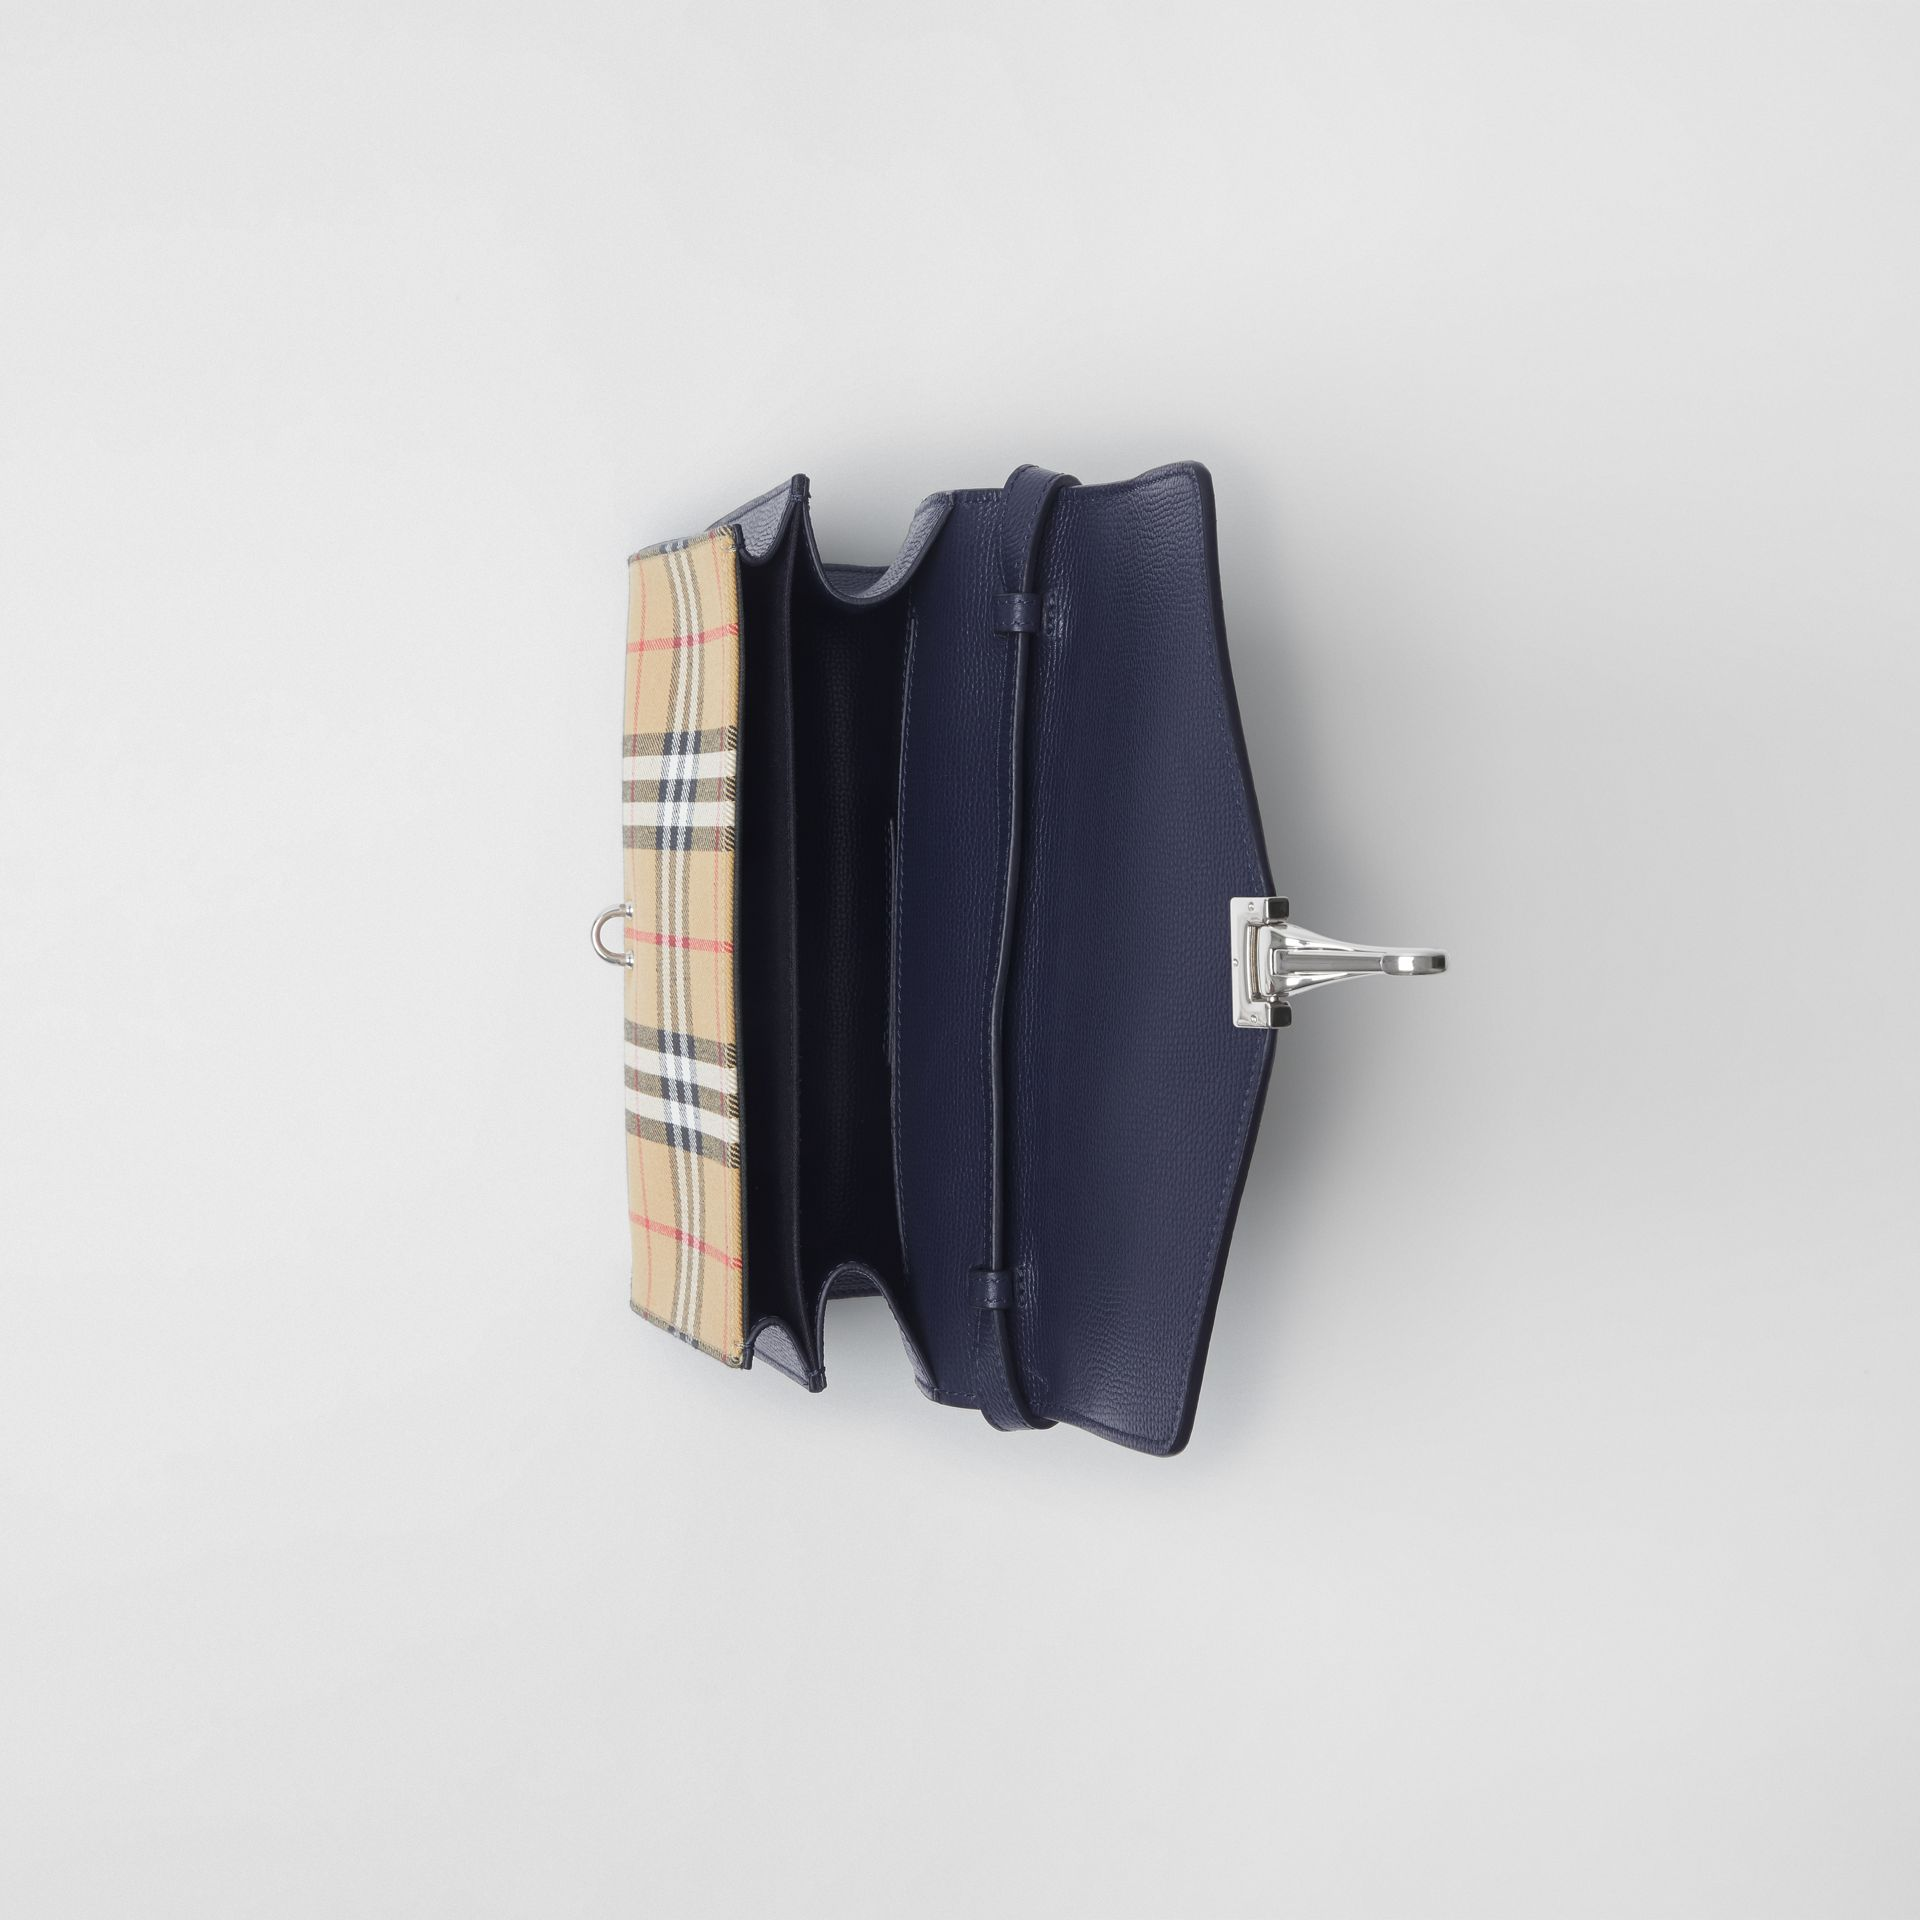 Small Vintage Check and Leather Crossbody Bag in Regency Blue - Women | Burberry Australia - gallery image 3